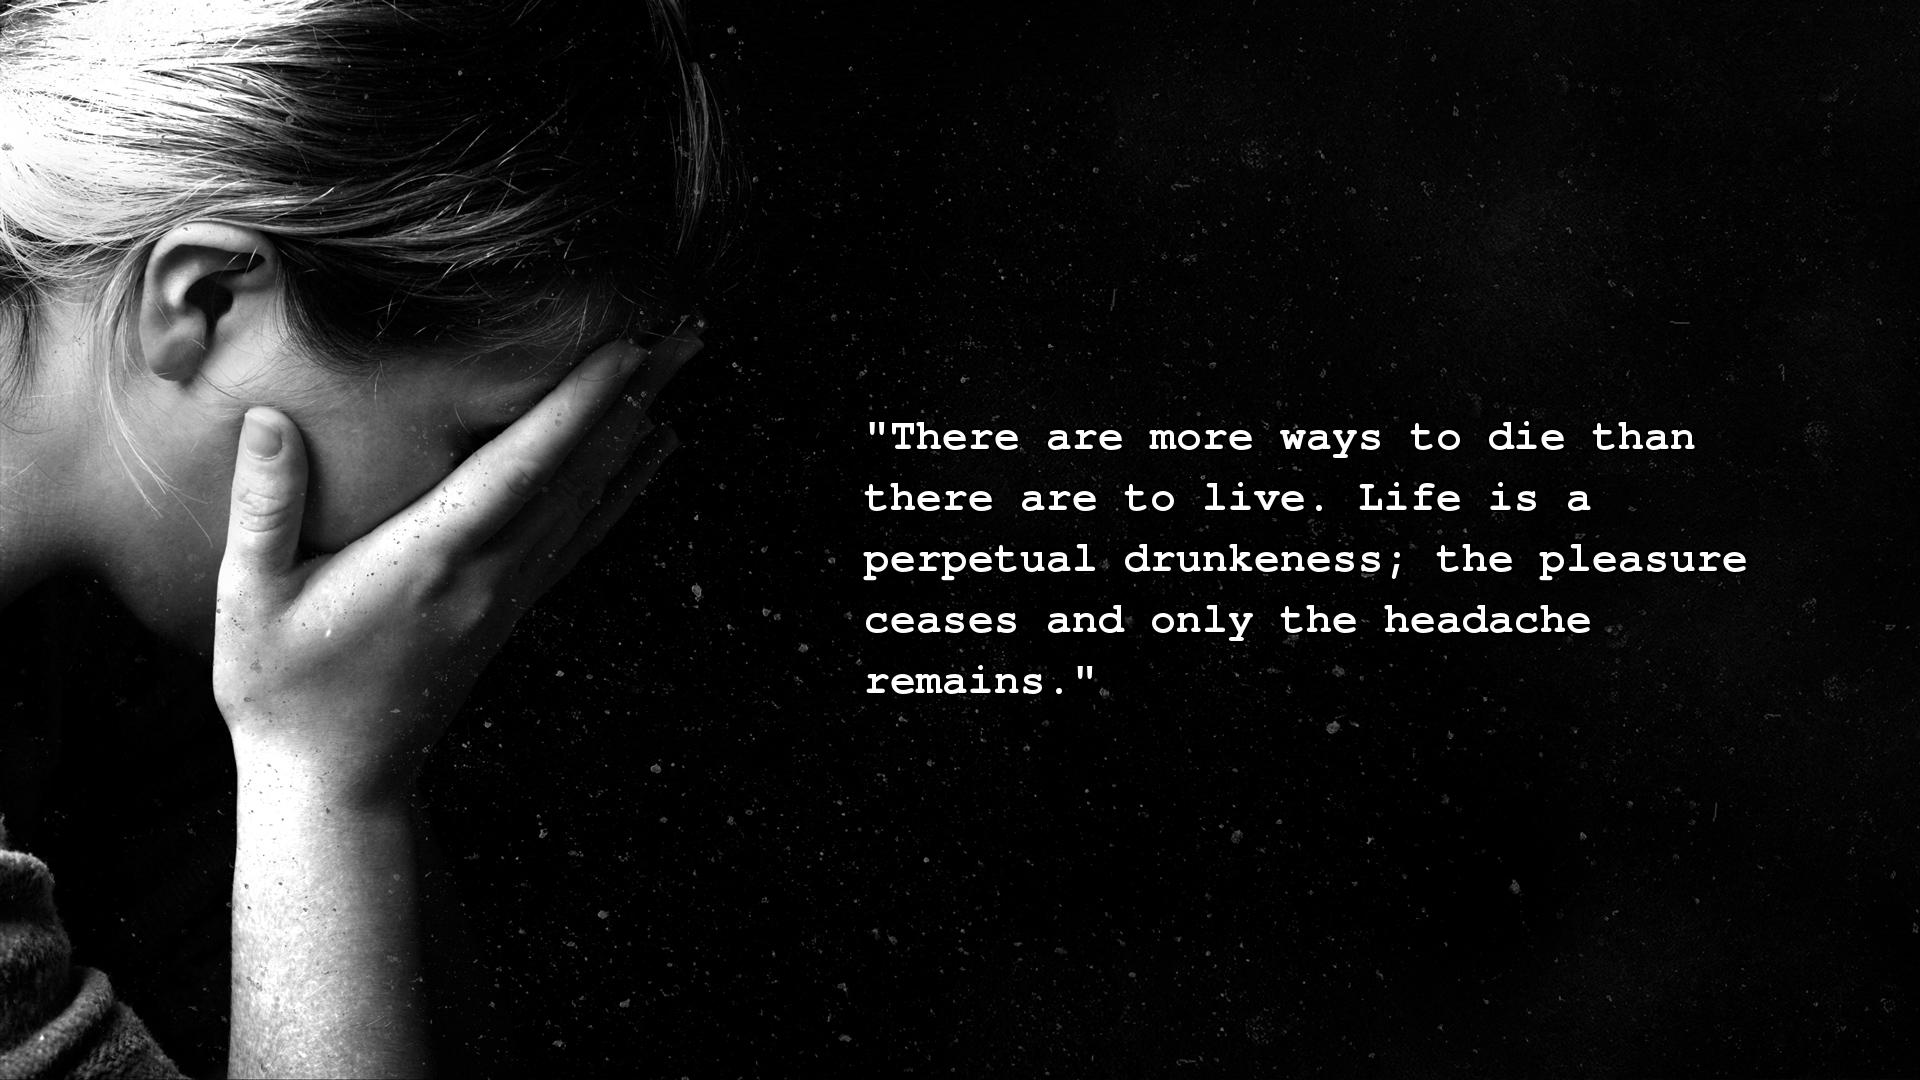 Dark Depressing Quotes Wallpapers Quotesgram